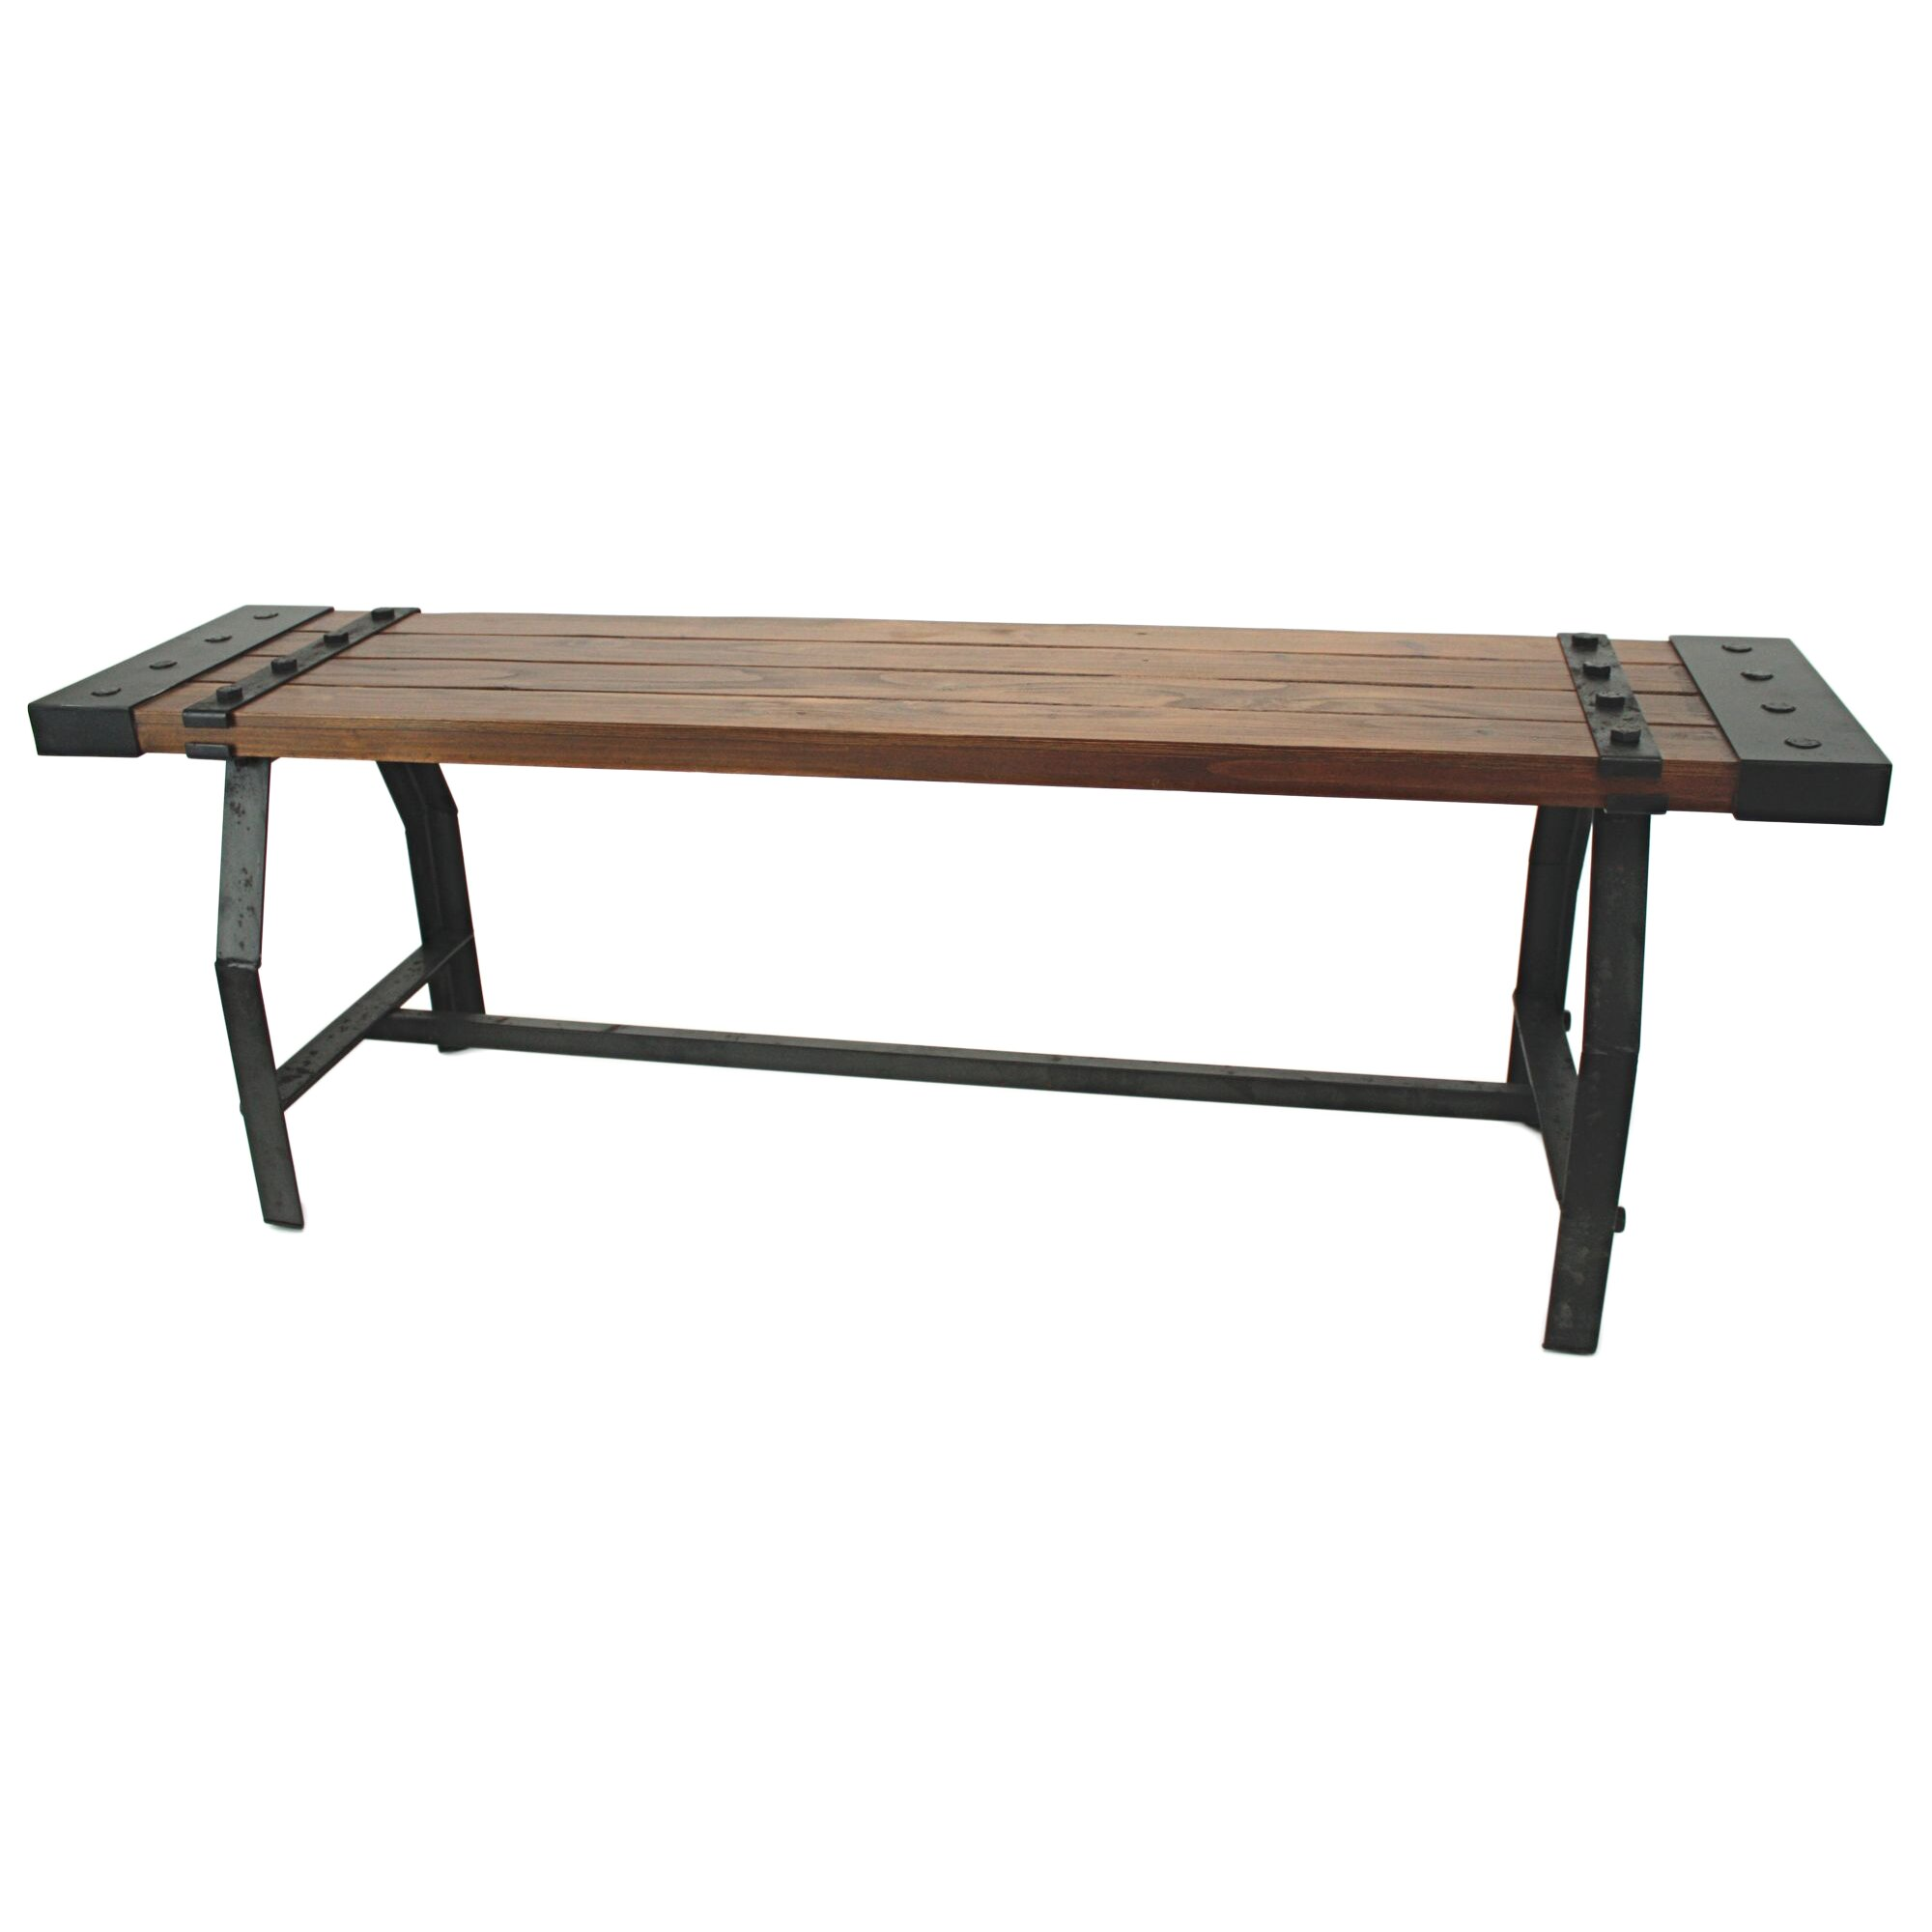 Aspire elkhart wood entryway bench reviews wayfair for Entryway mudroom bench